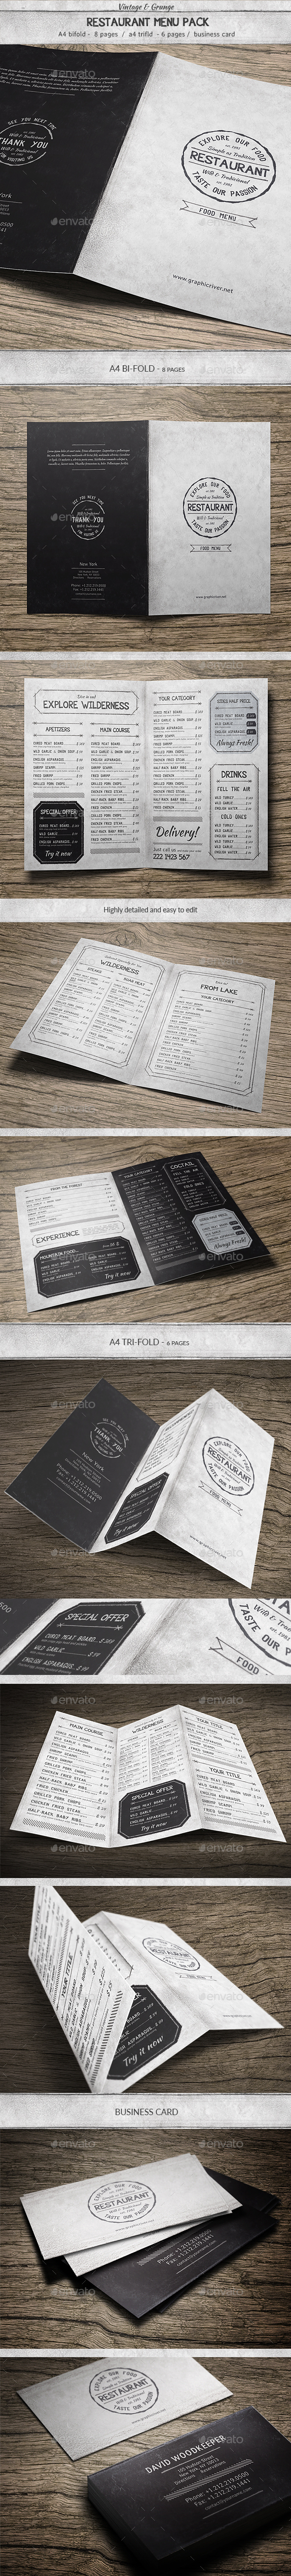 Vintage Food Menu Pack - Food Menus Print Templates